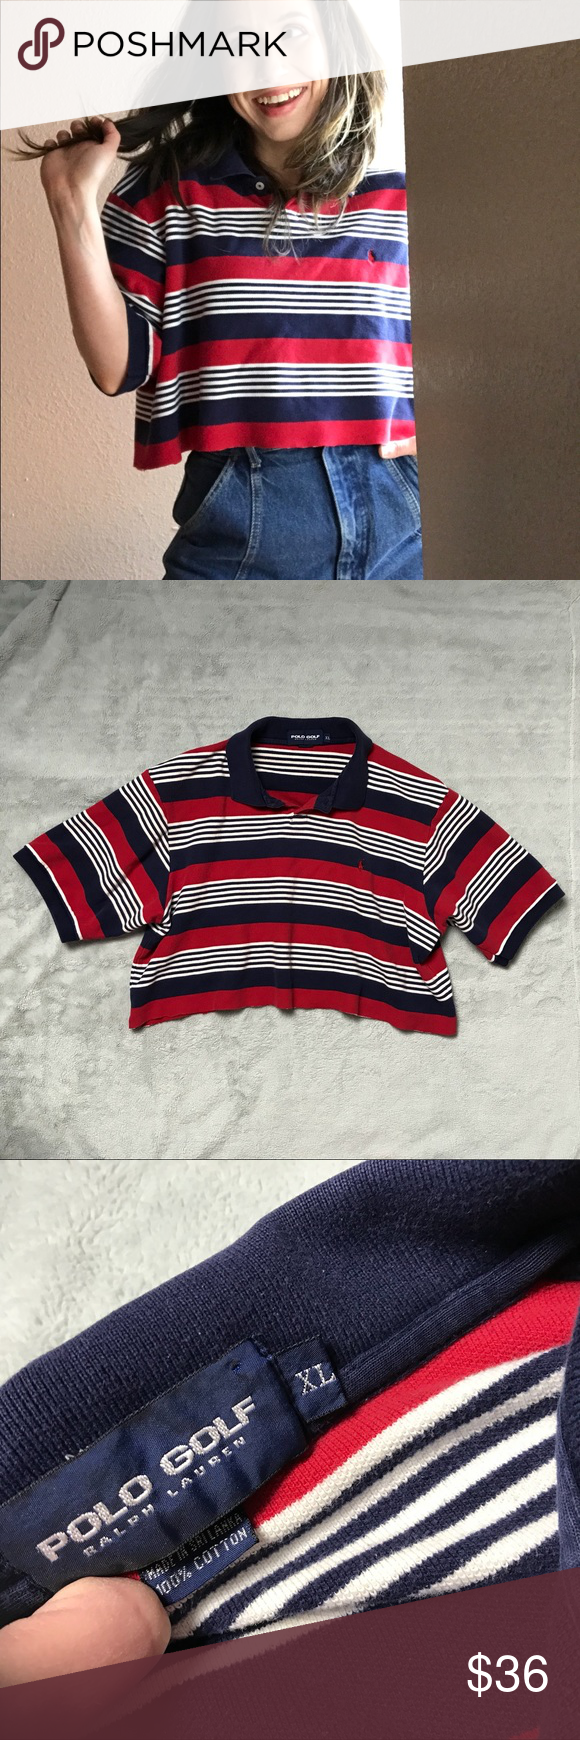 5a5b4af37d95 VTG Reworked Ralph Lauren Polo Striped Crop Top Excellent vintage  condition. Reworked crop top by